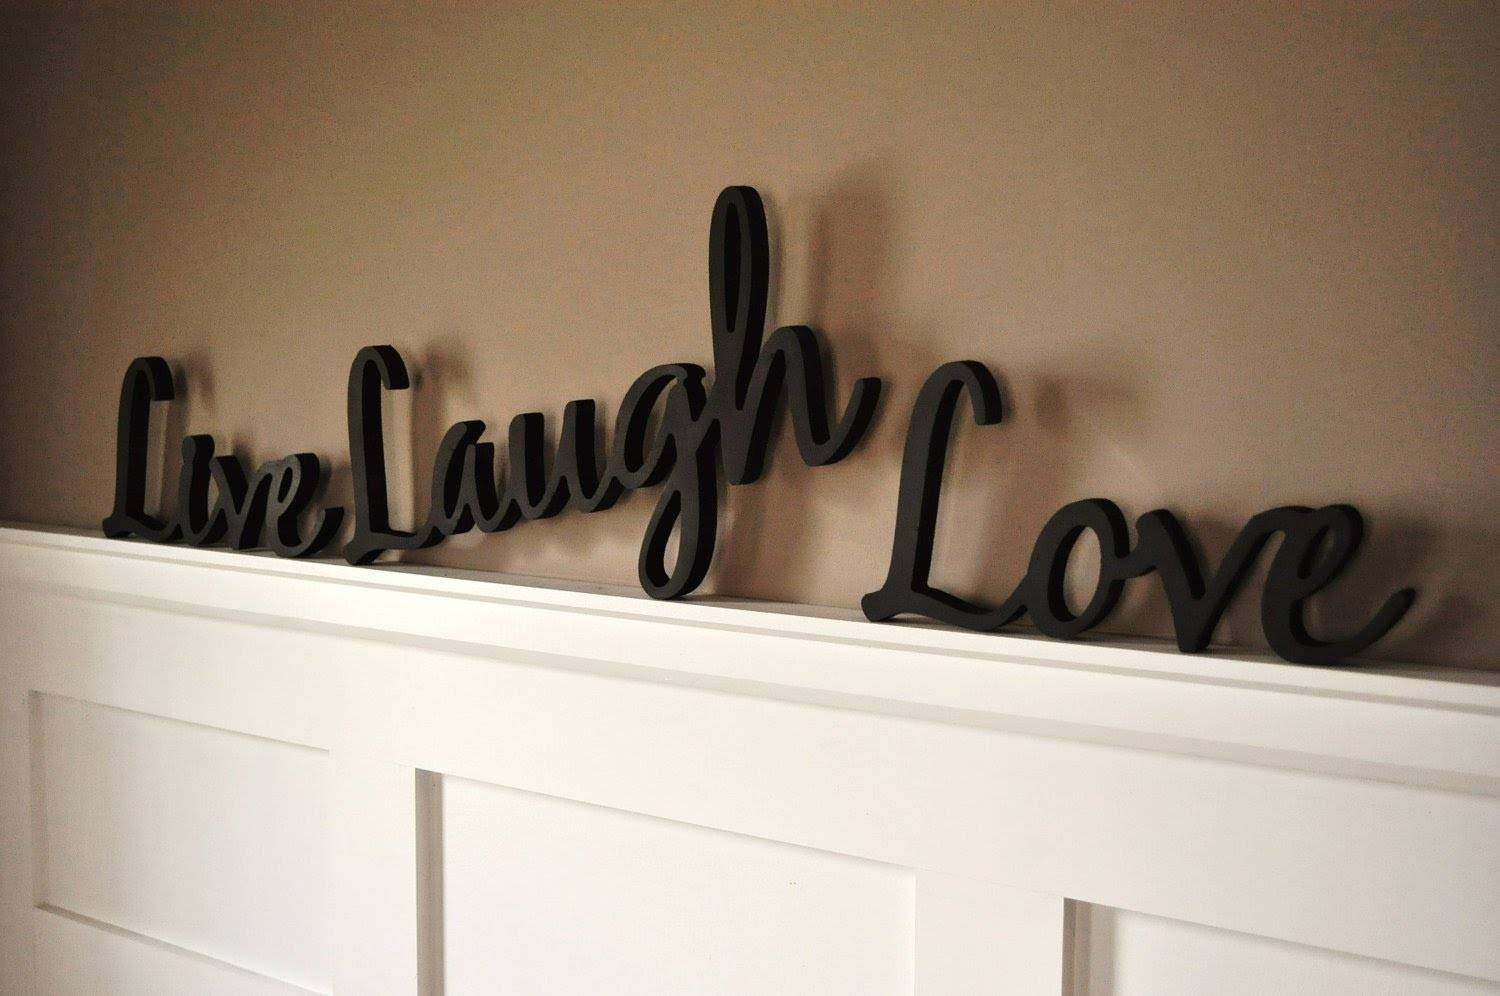 Live Love Laugh Wall Decor # Live Laugh Love Wall Decor Bed Bath Inside Most Popular Live Love Laugh Metal Wall Art (View 17 of 25)